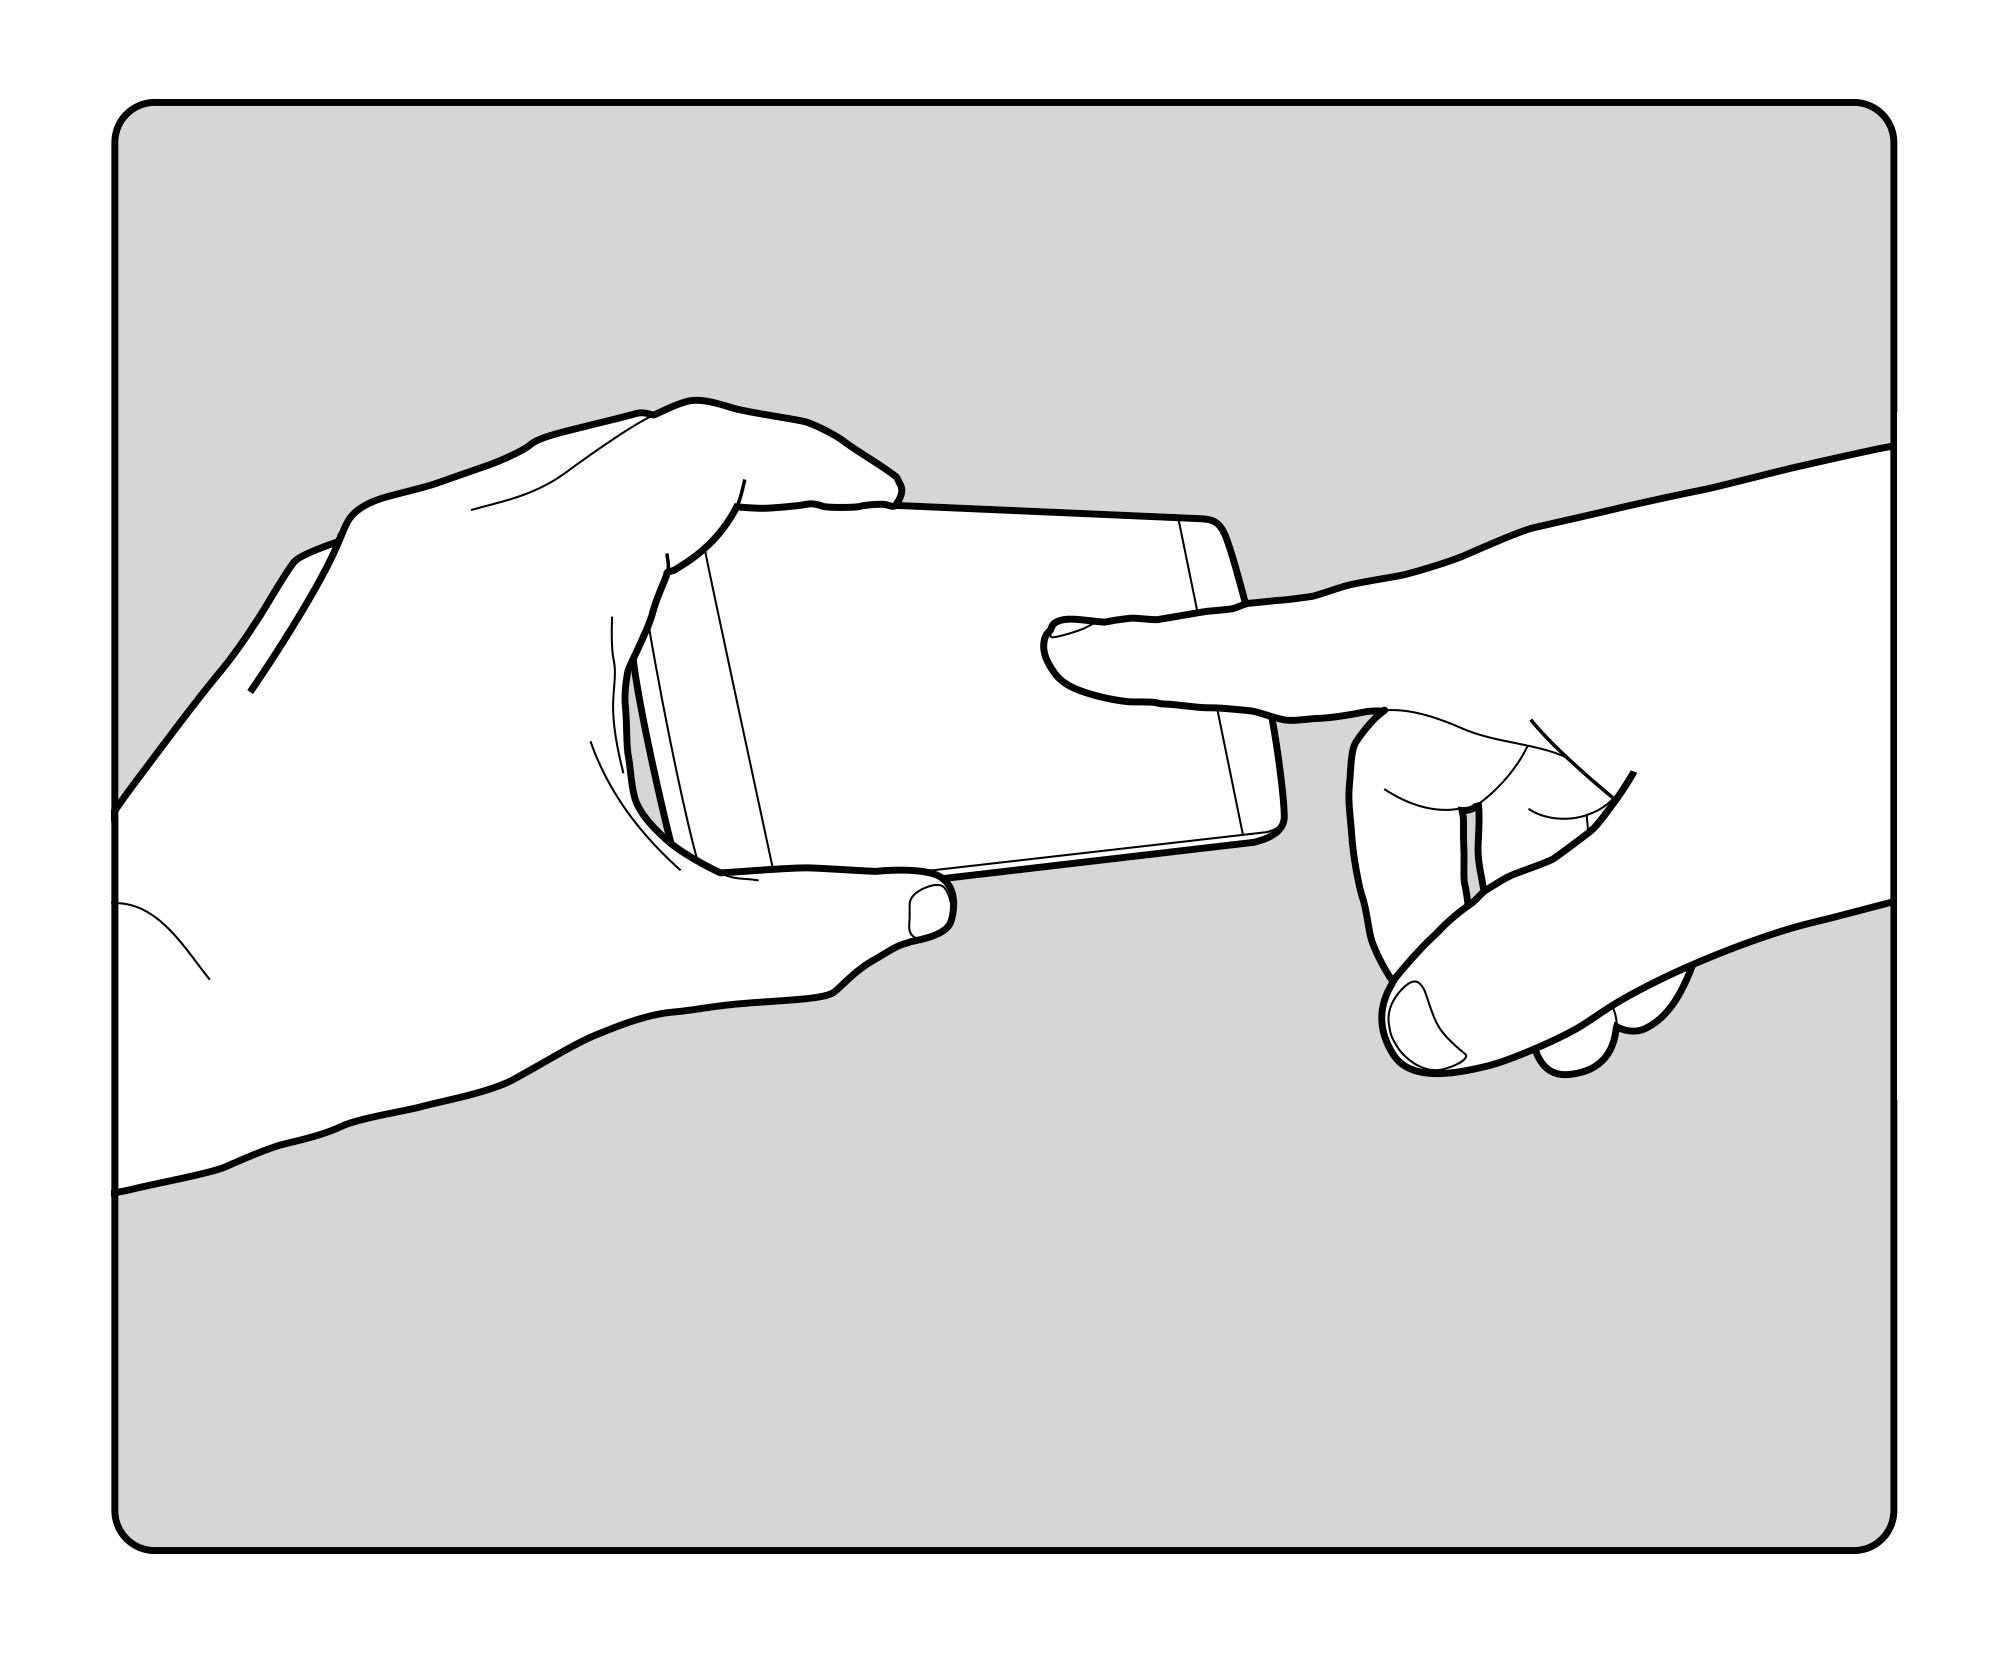 hands and phone storyboard illustration